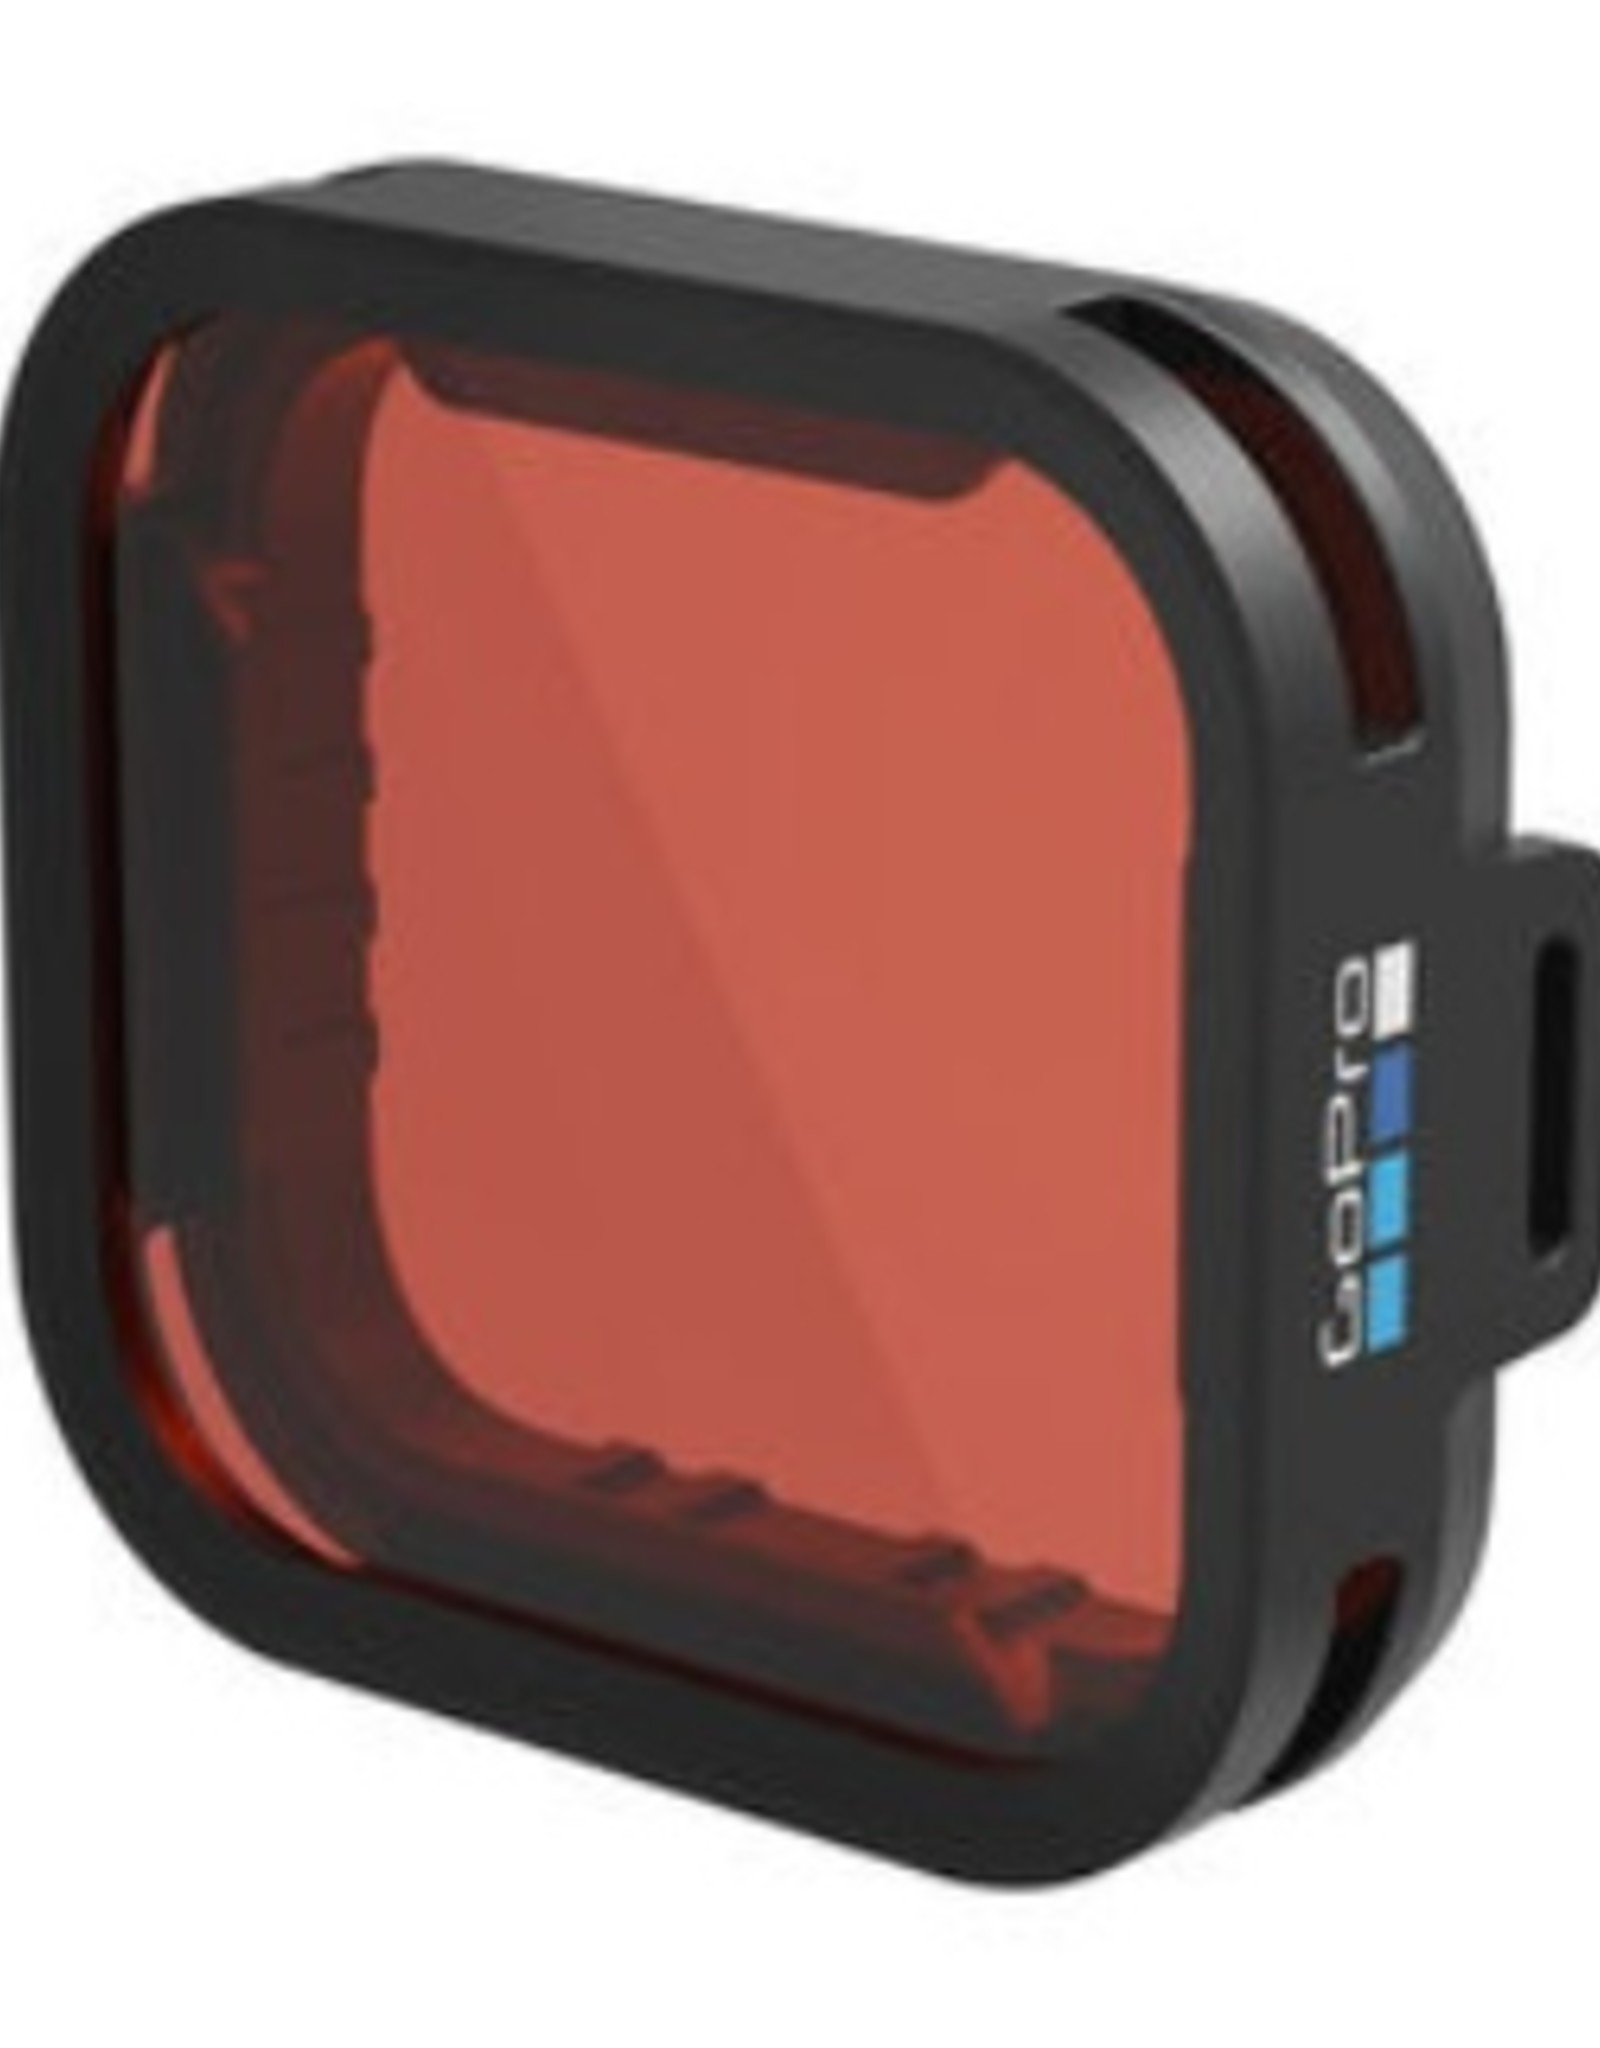 GoPro GoPro | Blue Water Snorkel Filter (HERO6 Black/HERO5 Black/HERO 2018) | GP-AACDR-001